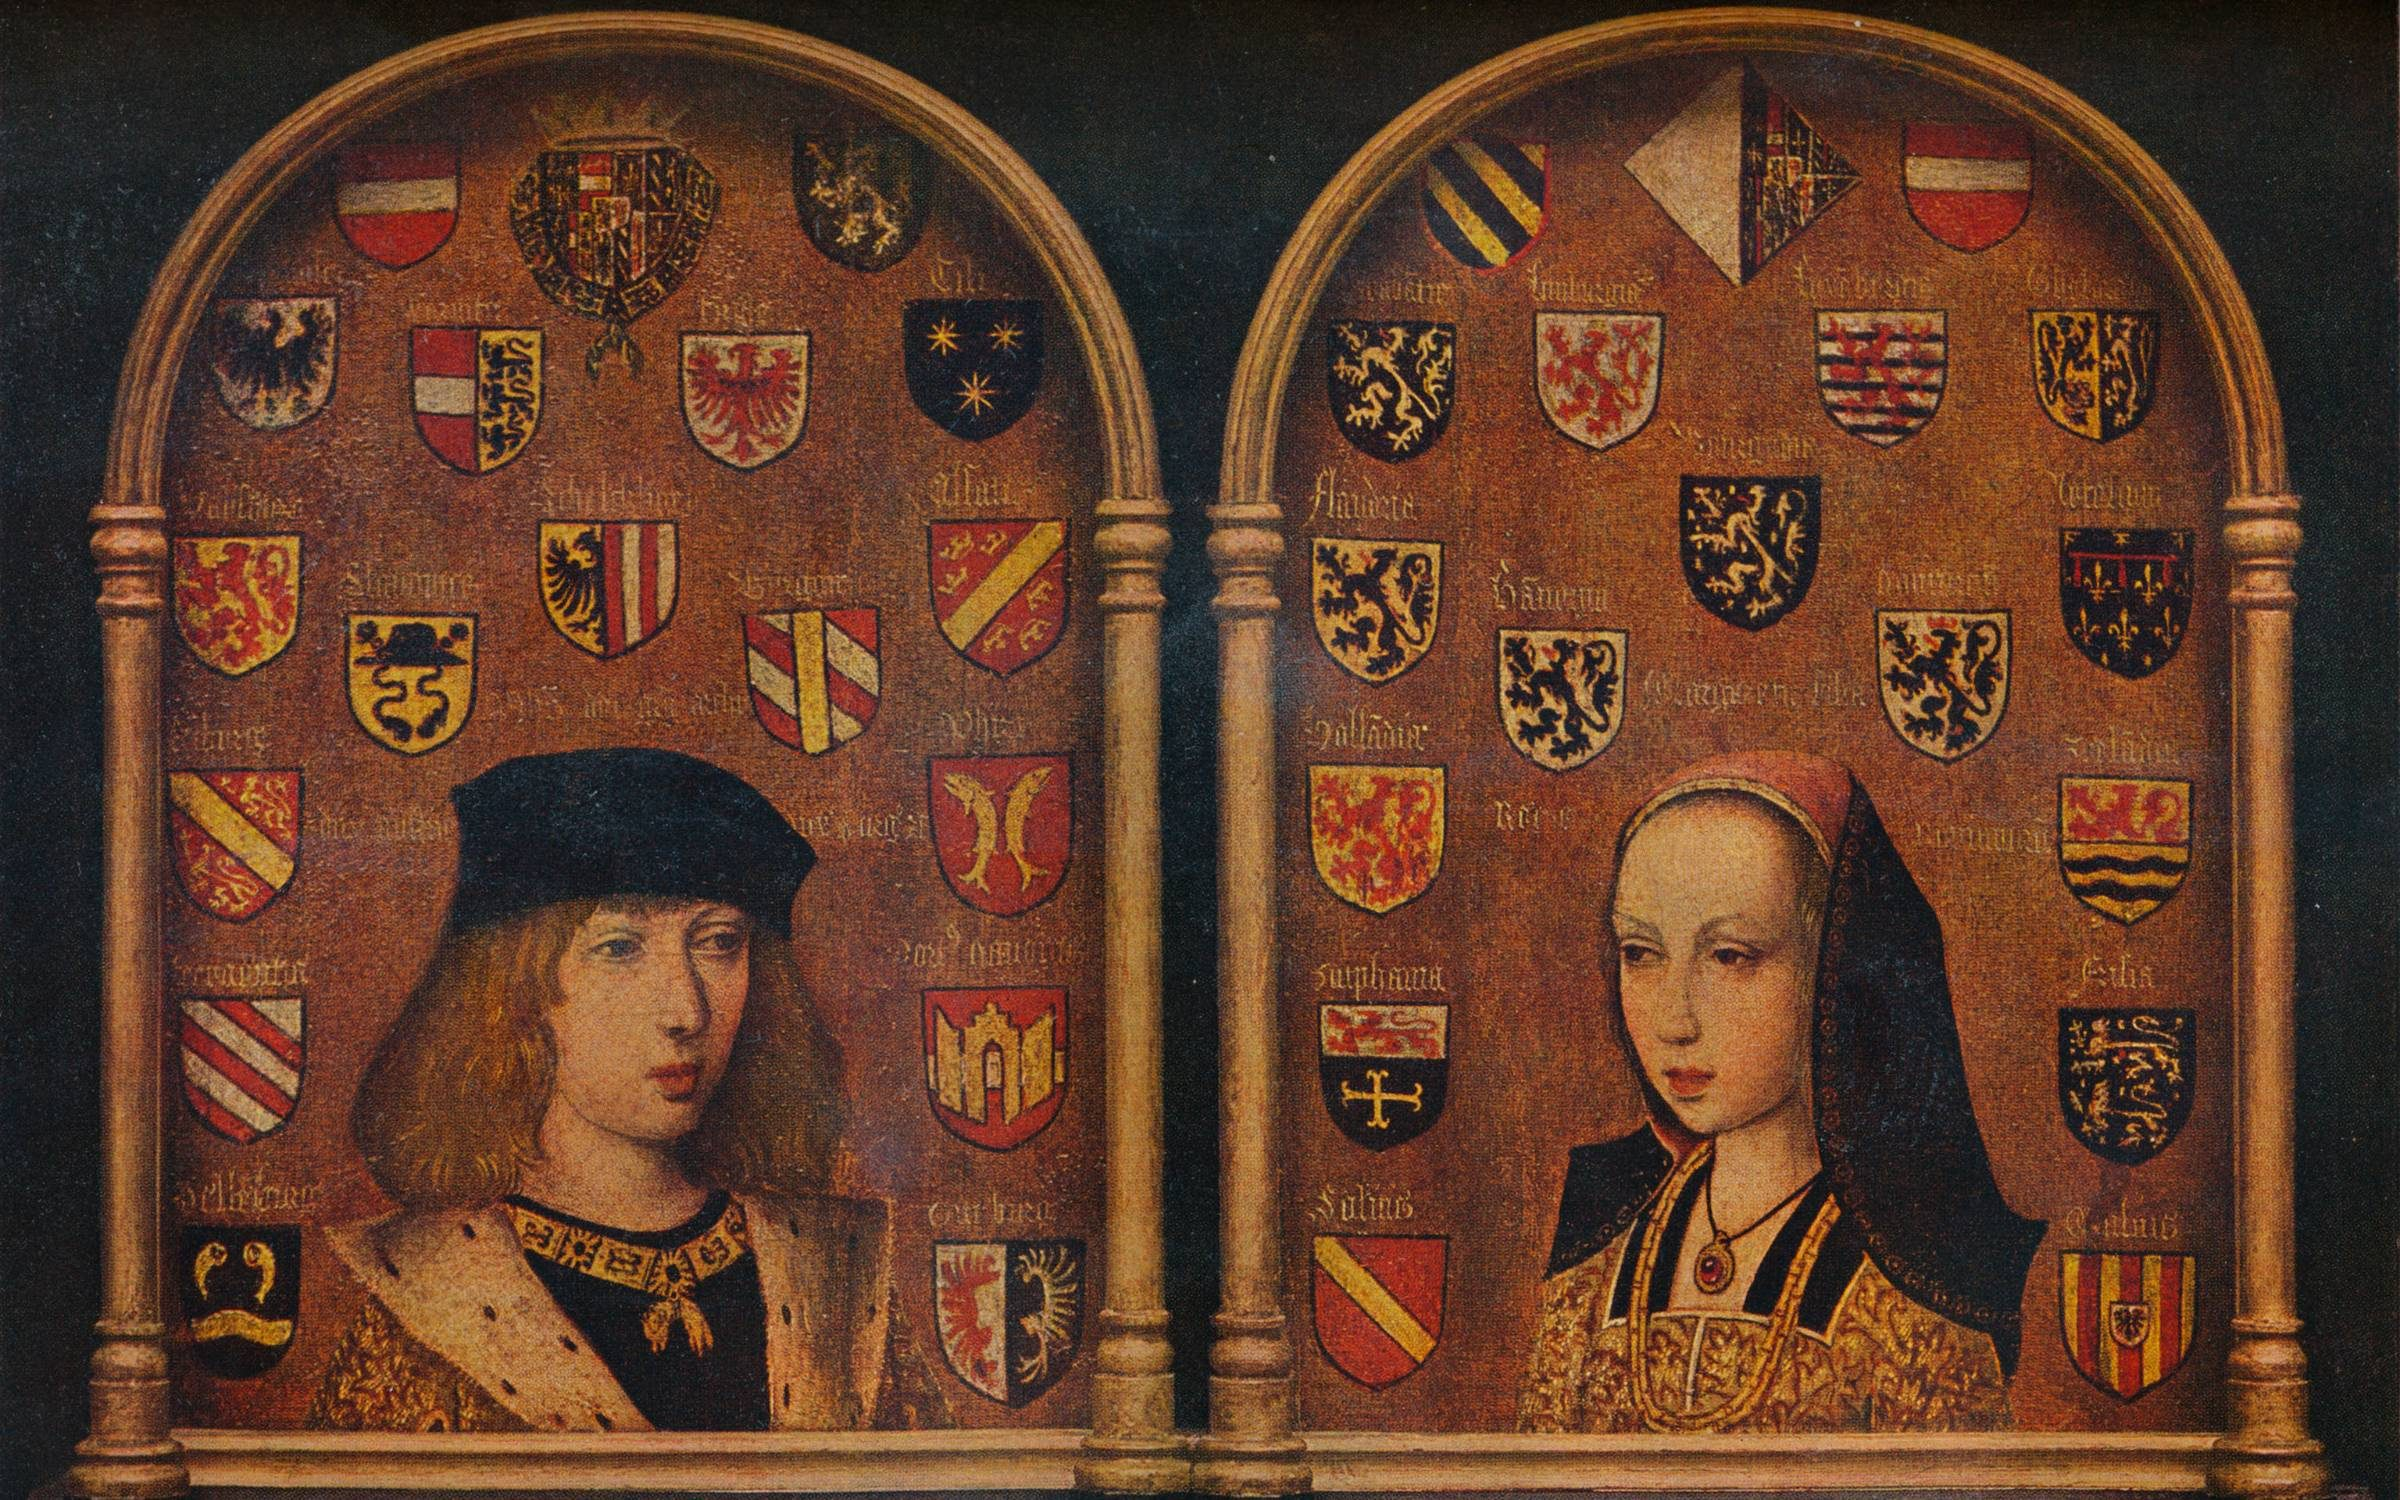 'Diptych: Philip the Handsome and Margaret of Austria', c1493. Philip the Handsome (1478-1506) became Philip I of Castile. Margaret of Austria (1480-1530) became Regent of the Netherlands. Painting housed at The National Gallery, London. From The Connoisseur Volume LXXXVIII, edited by C. Reginald Grundy. [The Connoisseur Ltd, London, 1931] (Photo by The Print Collector/Getty Images)